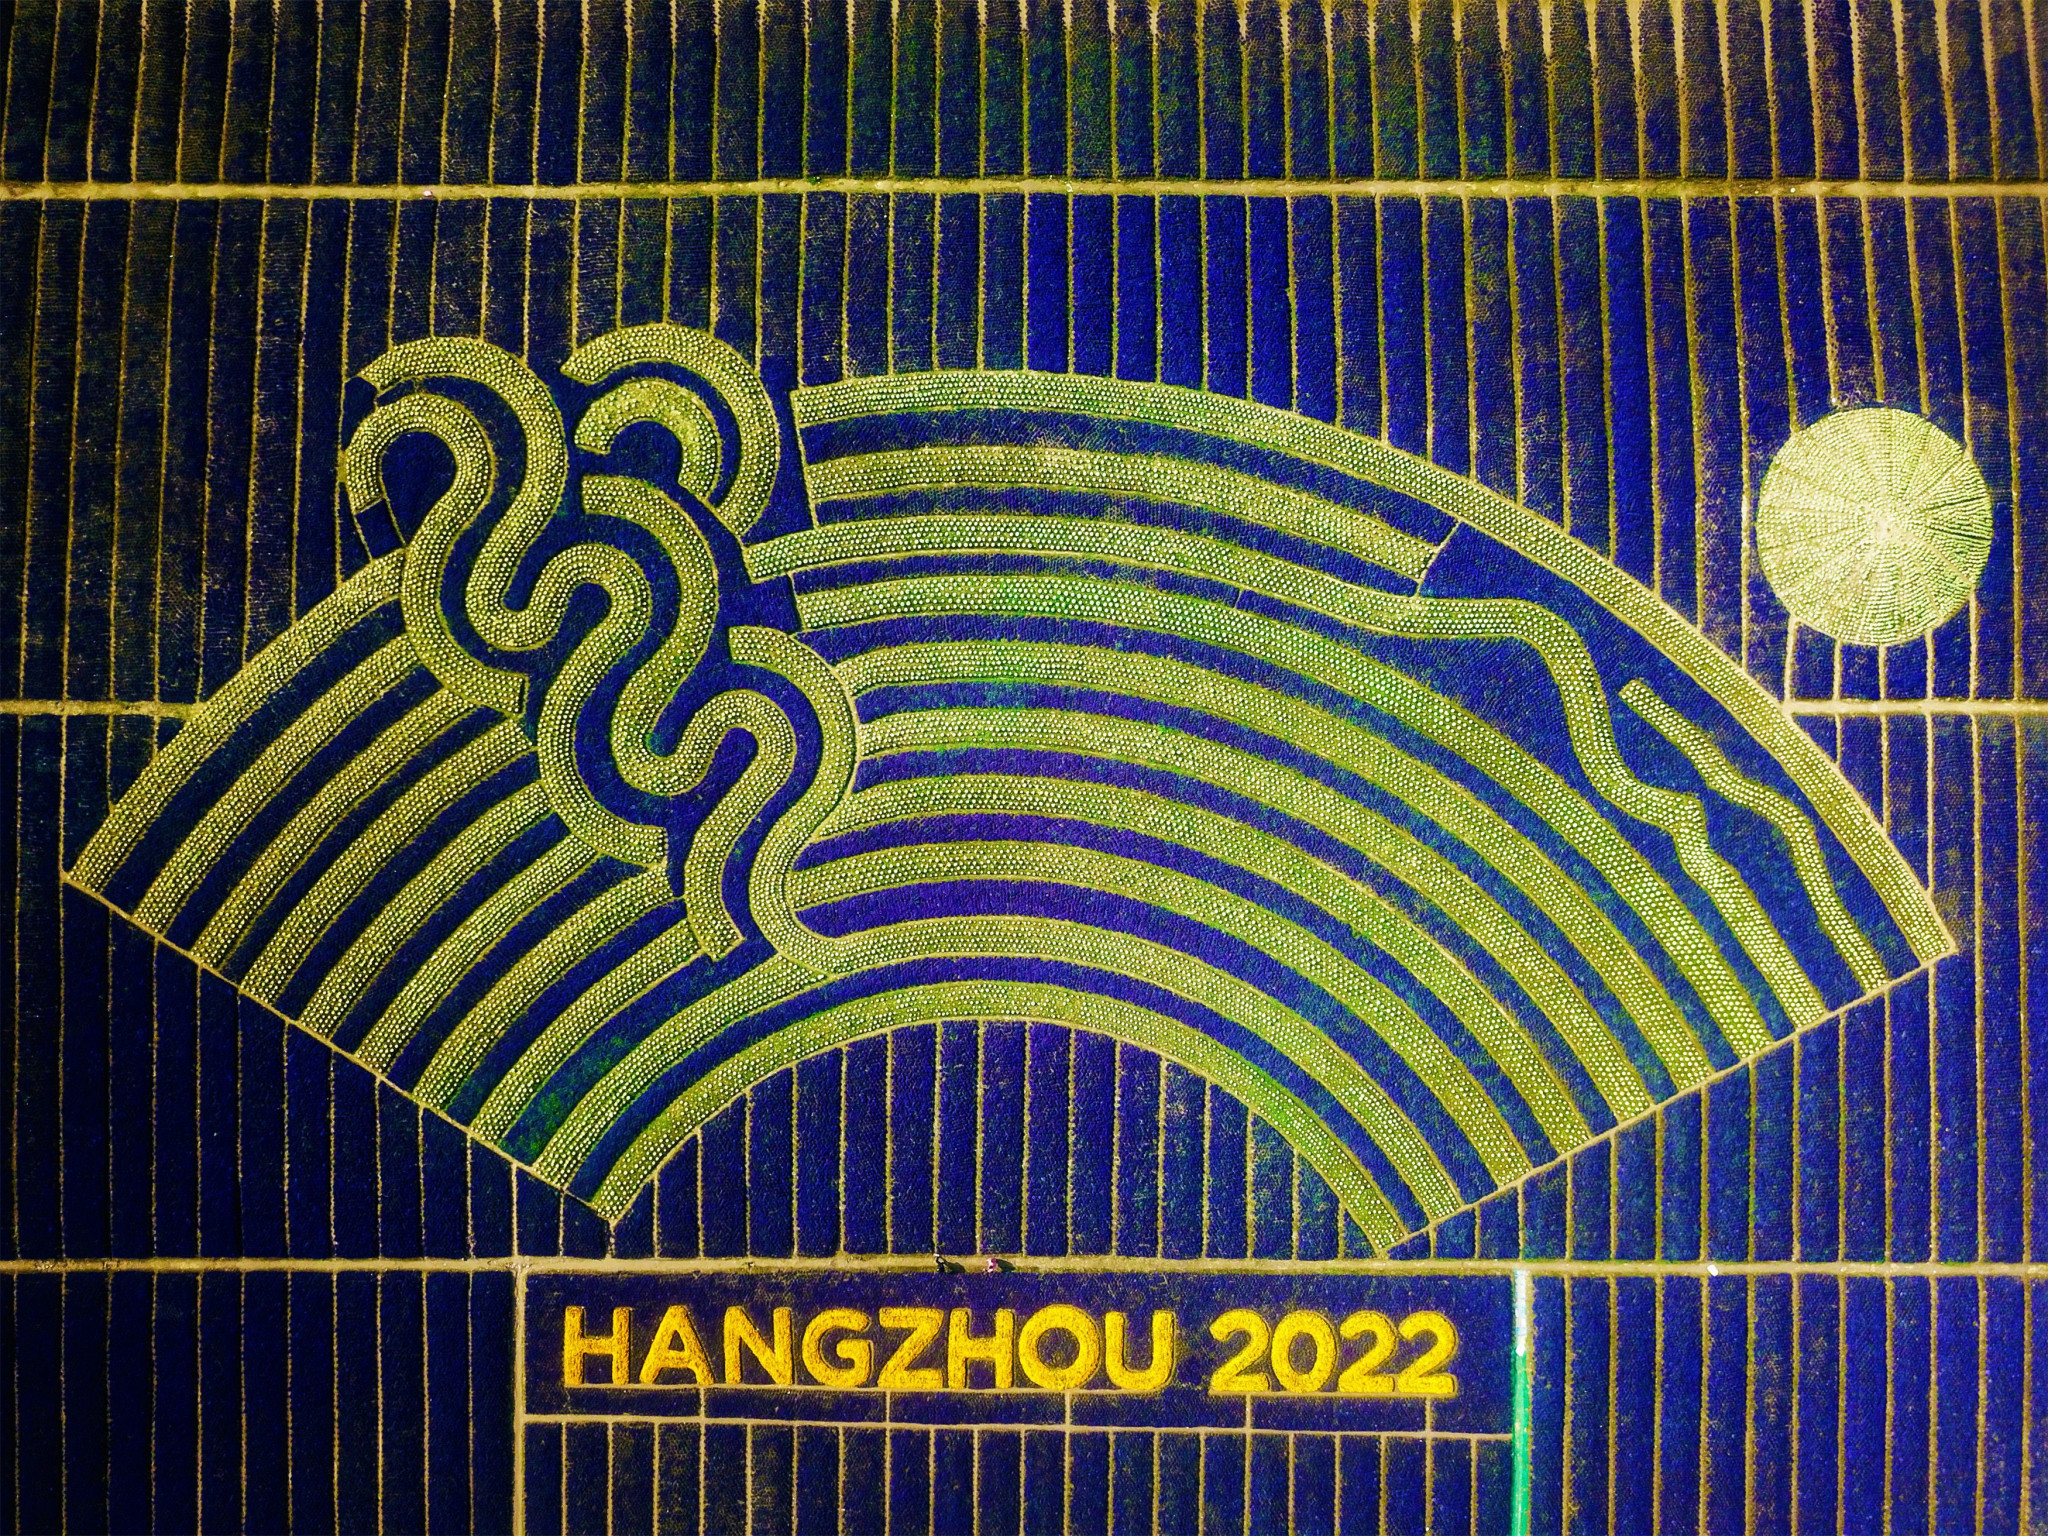 """Al-Musallam looks forward to """"best Asian Games ever"""" at Hangzhou 2022"""